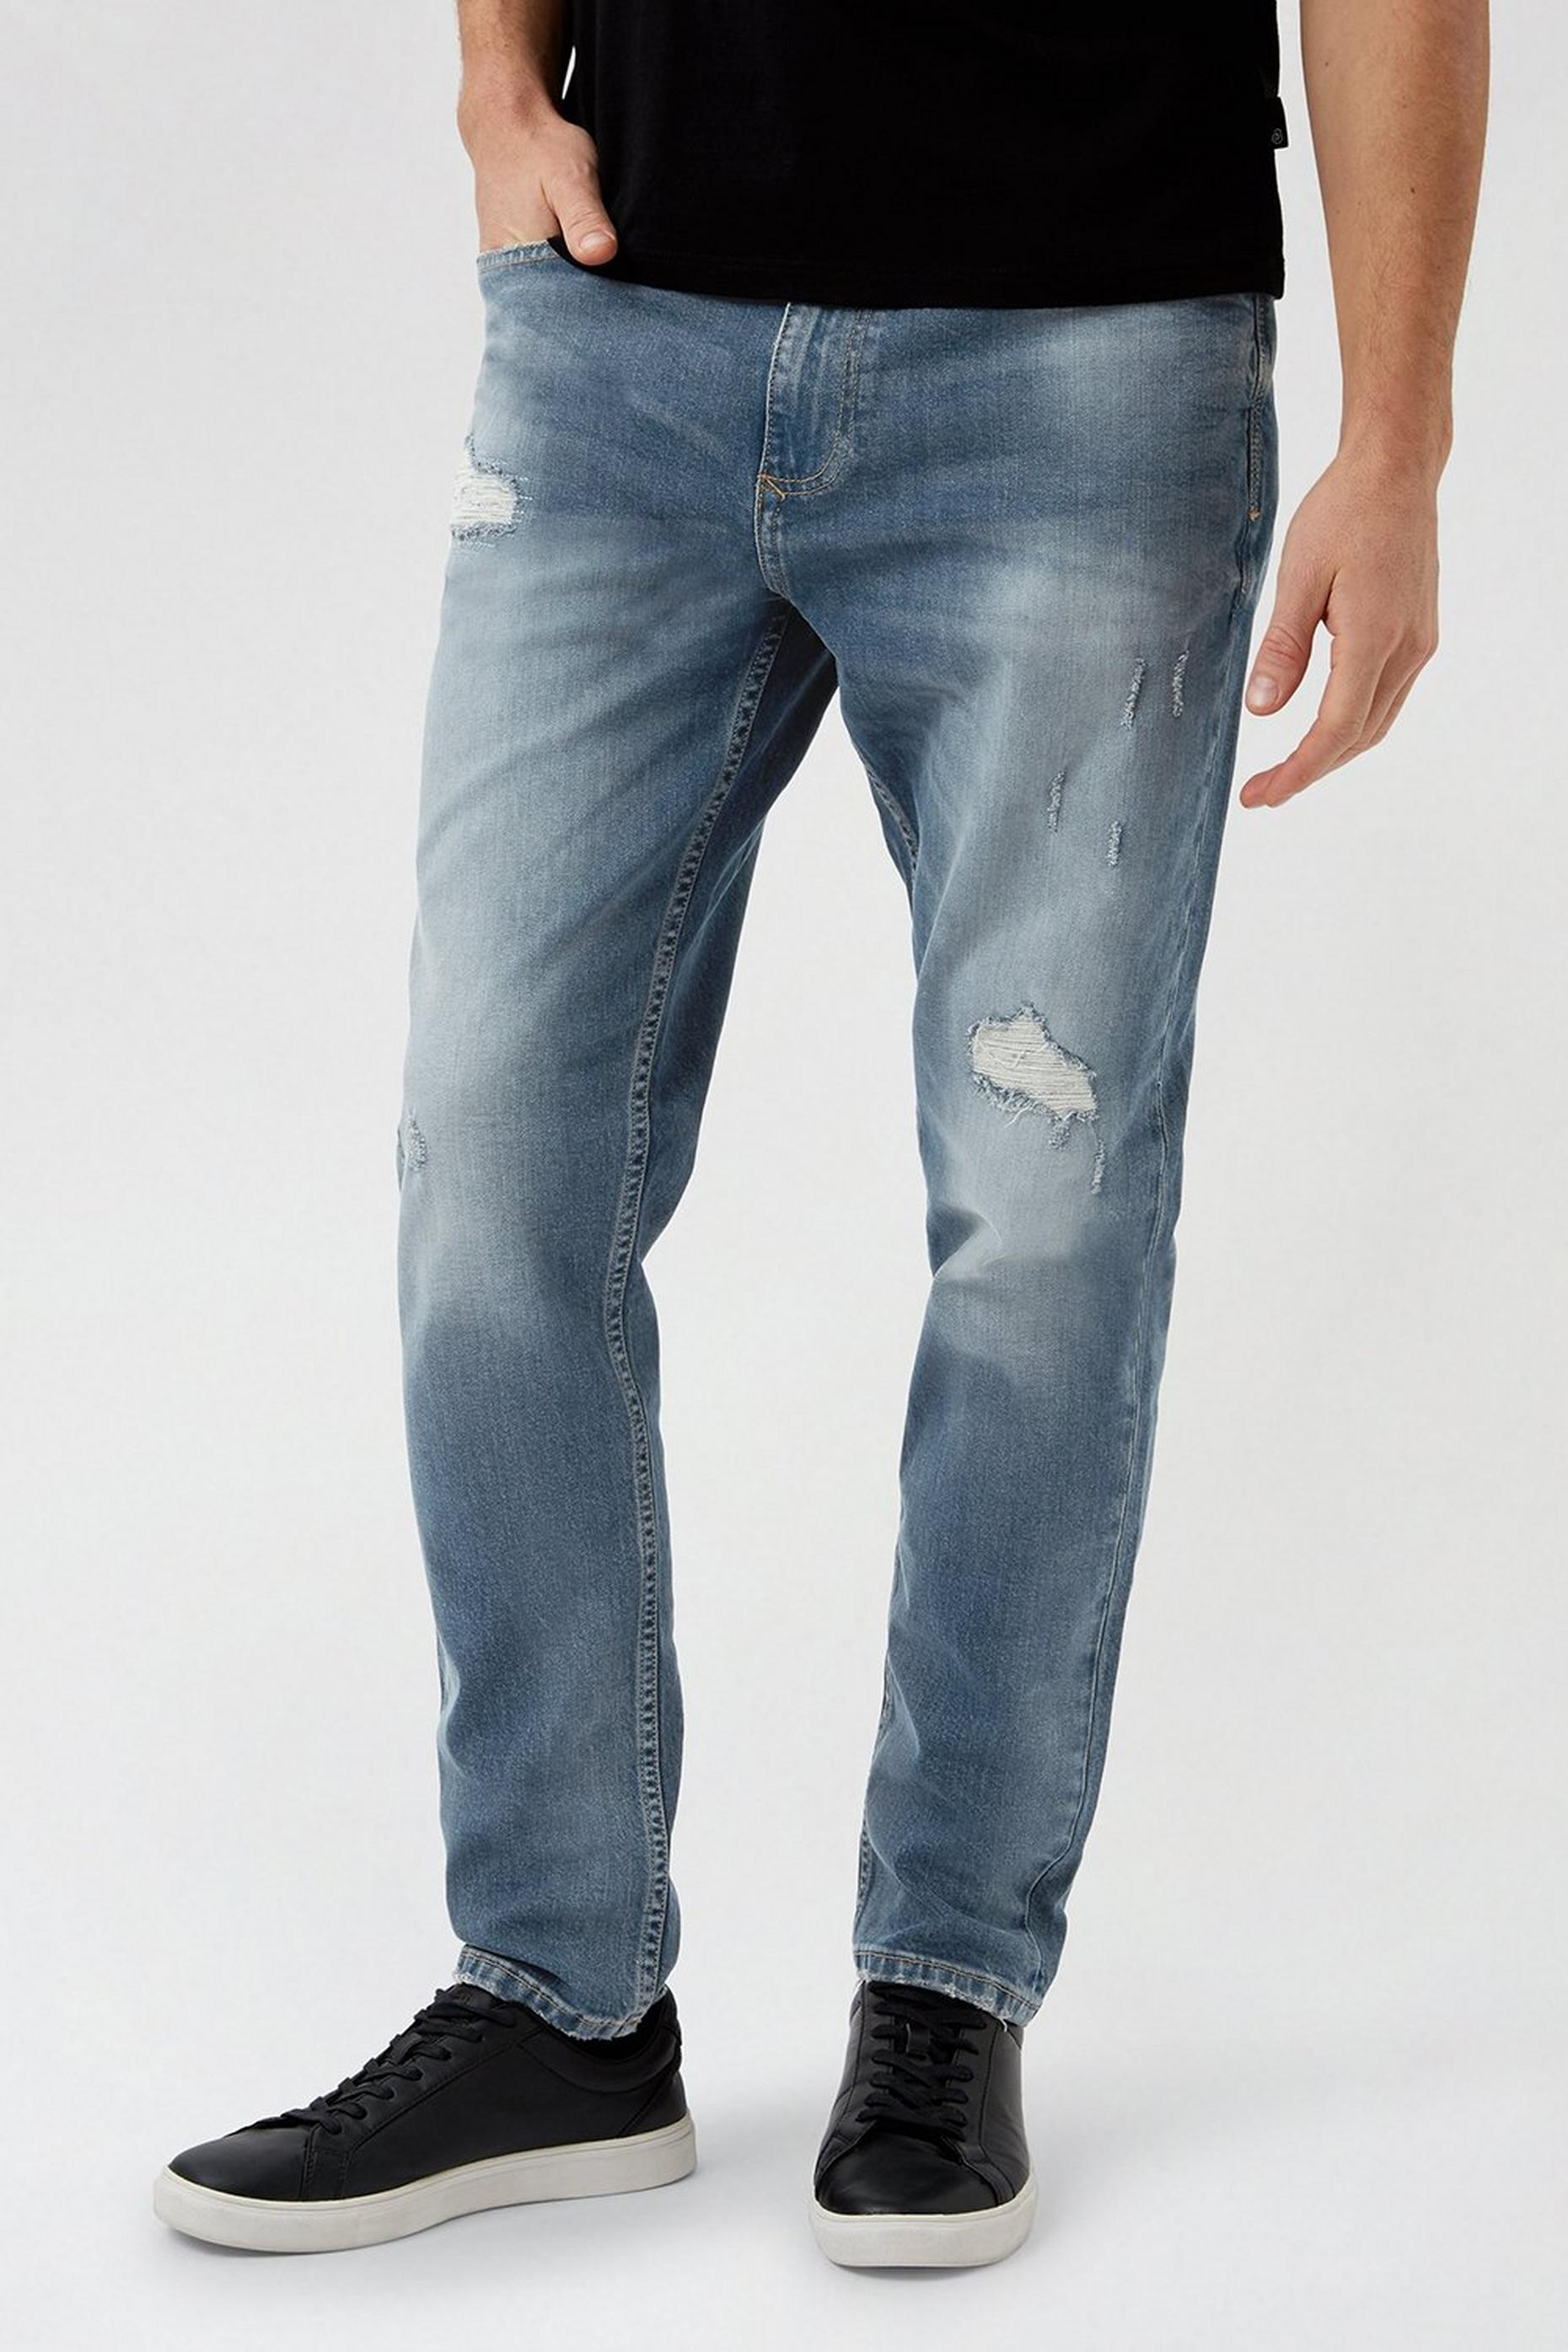 Tapered Grey Blue Organic Rip Jeans